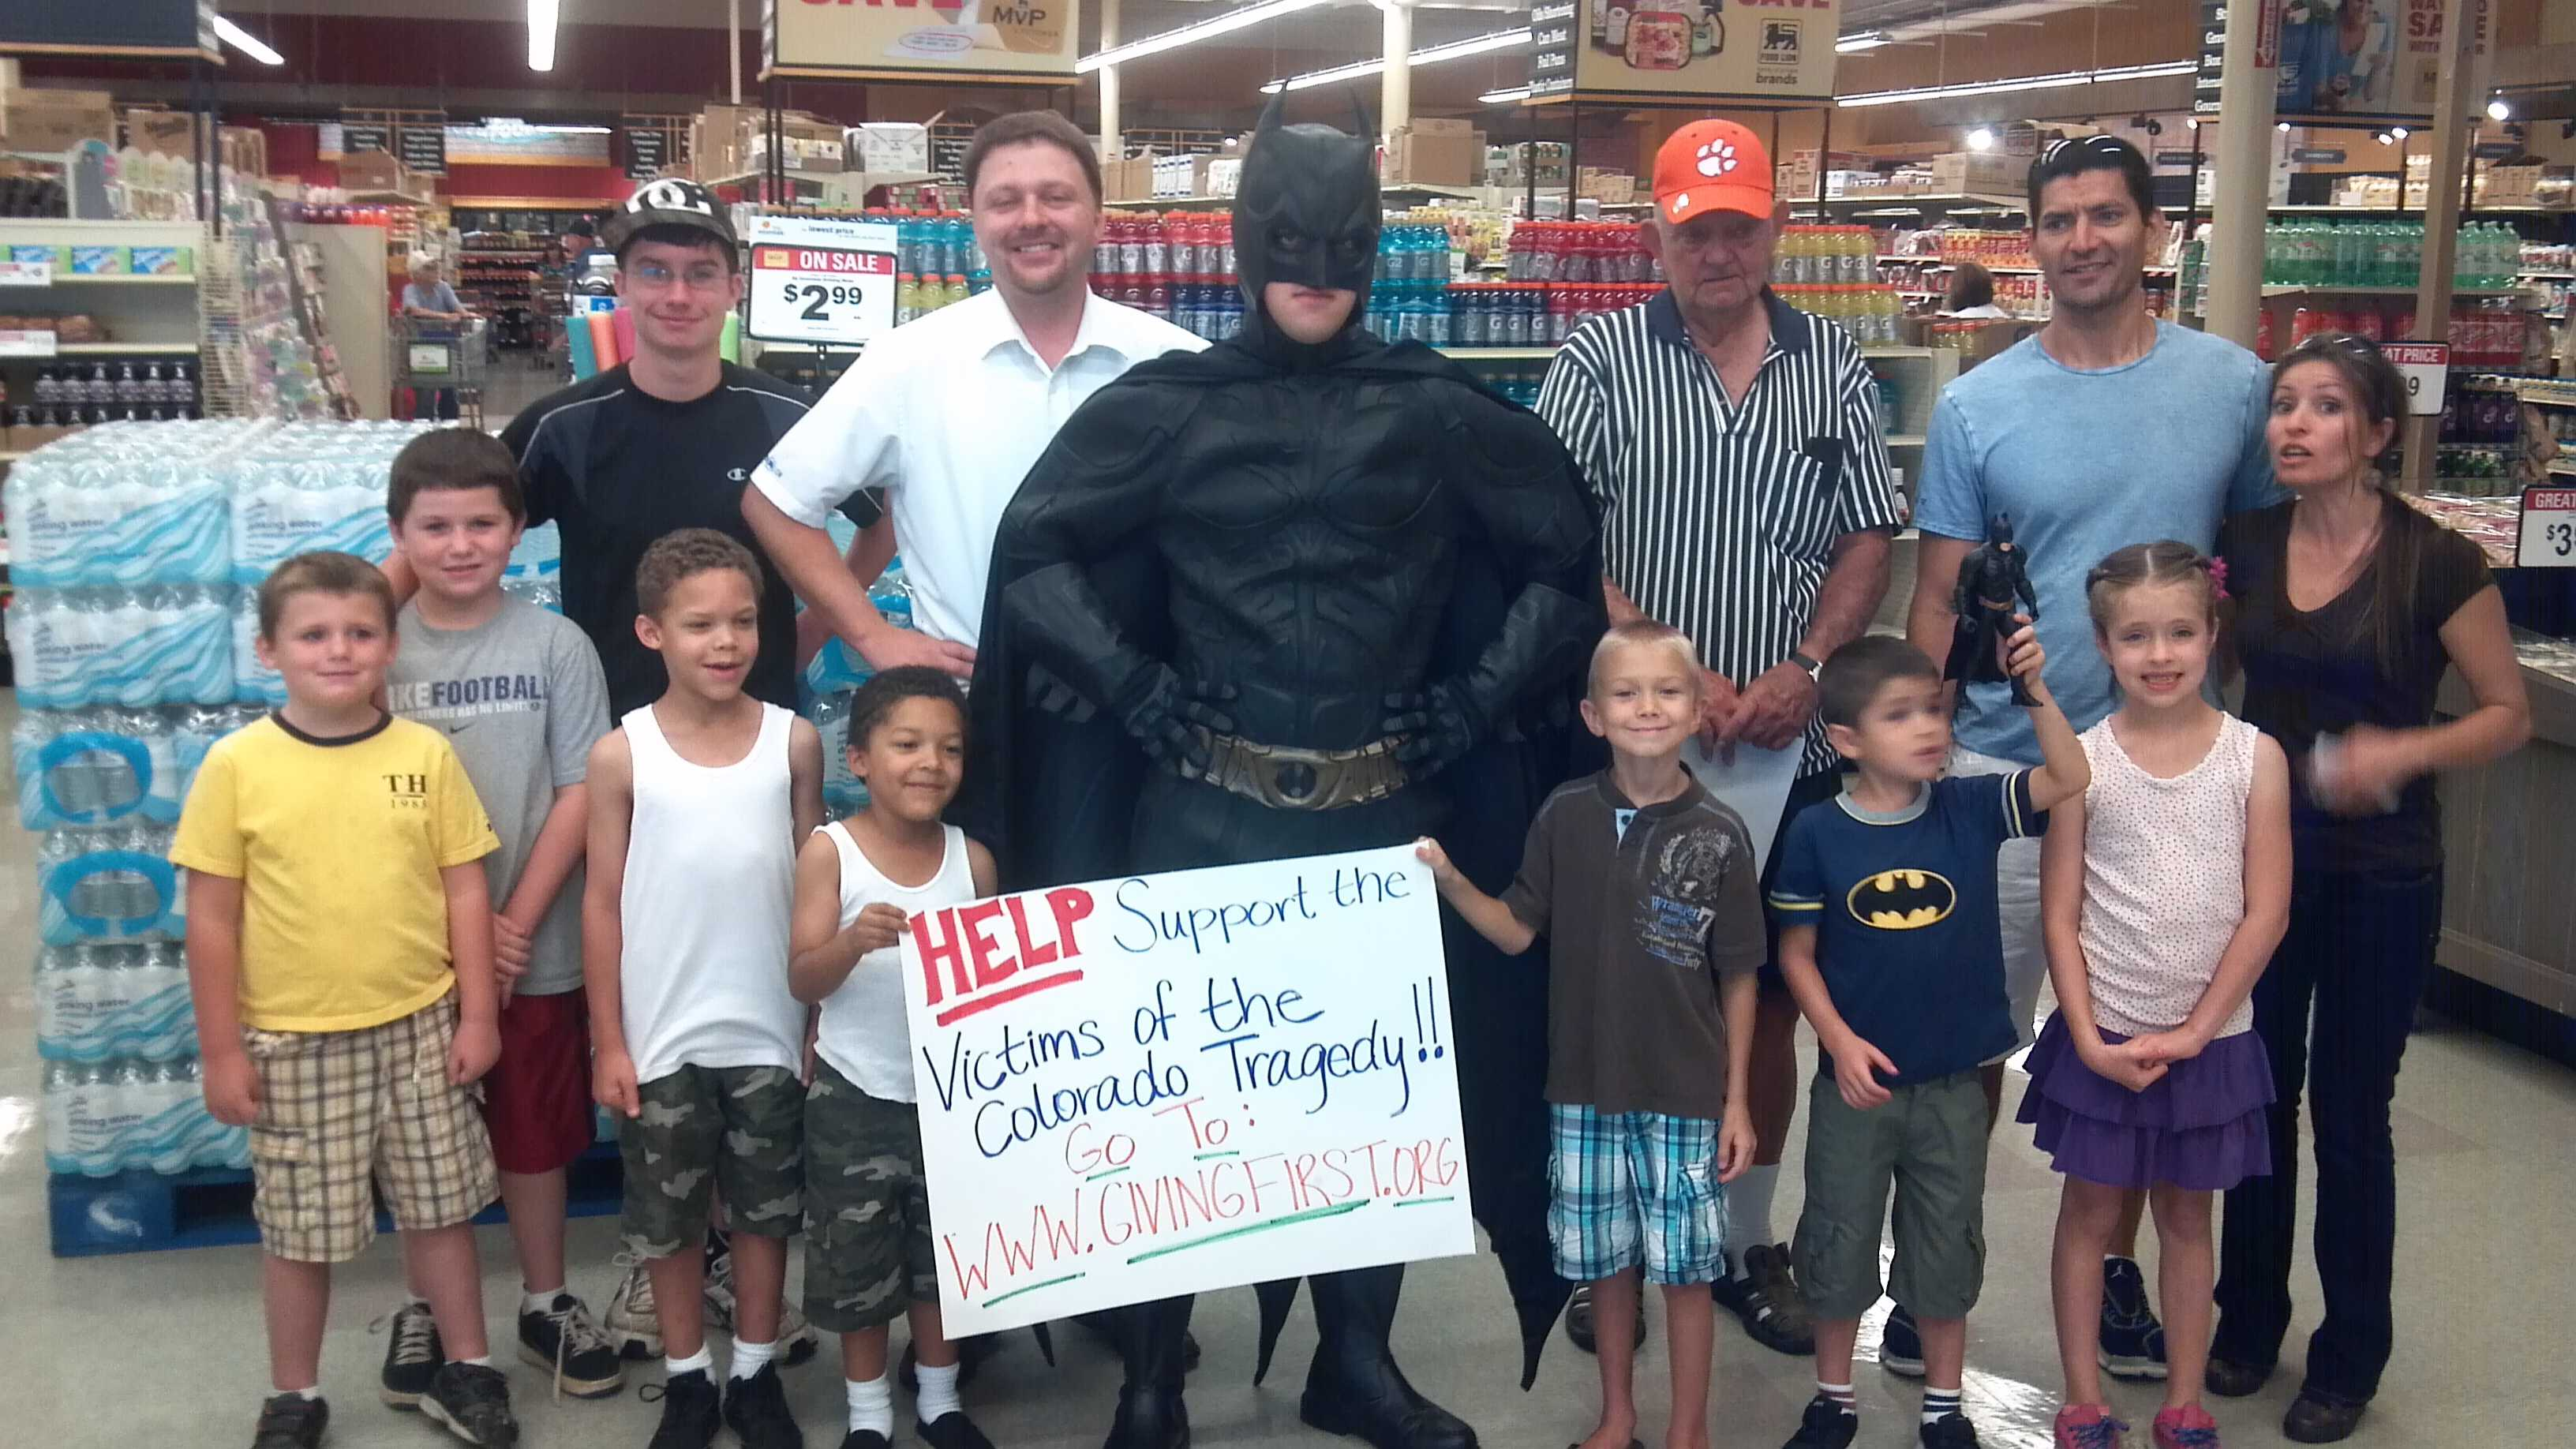 Batman joins store manager, Jeremy Fuller (in white), and fans at the Food Lion in Greenwood for a fundraiser to benefit the Colorado theater shooting victims.